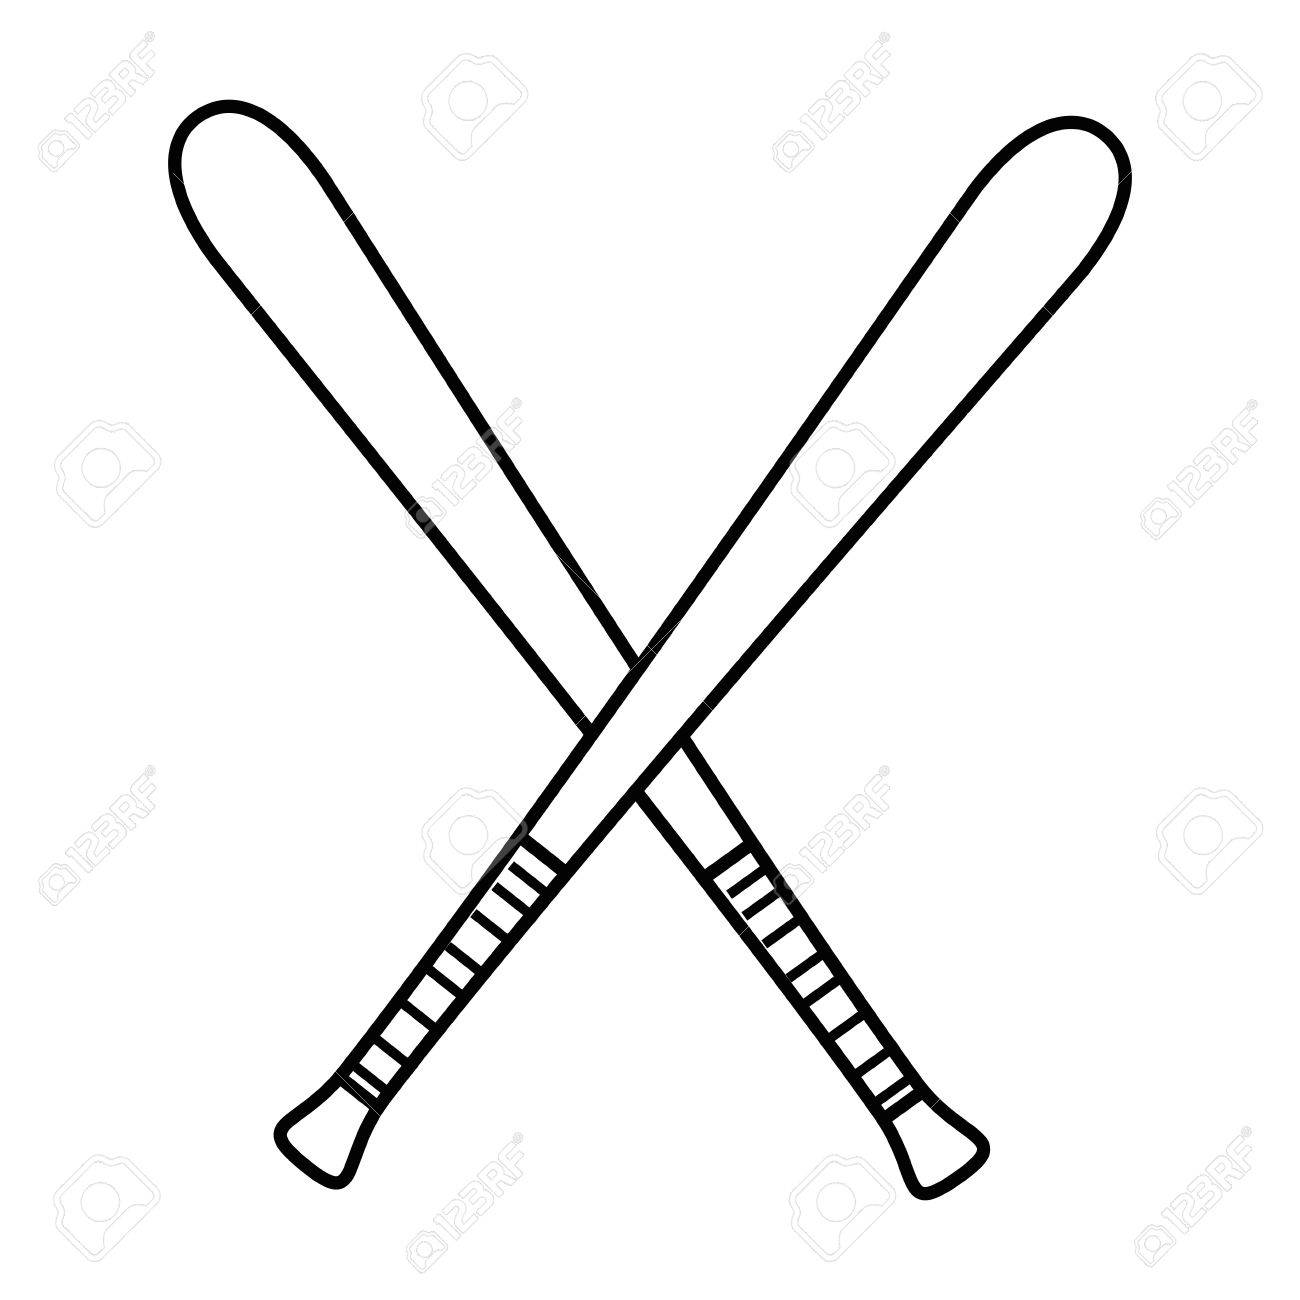 baseball bats crossed icon over white background vector illustration rh 123rf com crossed baseball bats clip art free